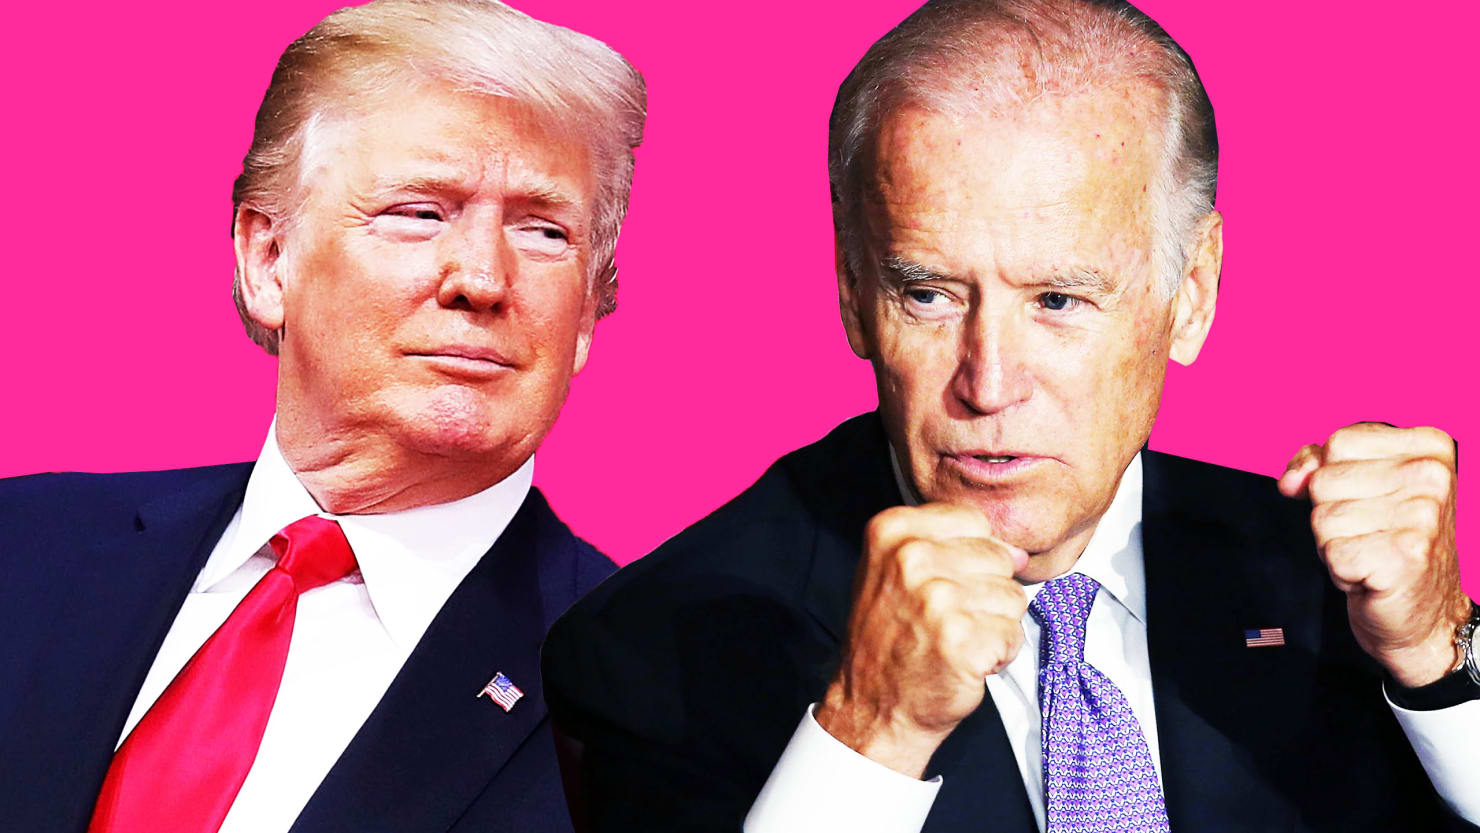 100 Days from election, Dementia Joe still supports white nationalism